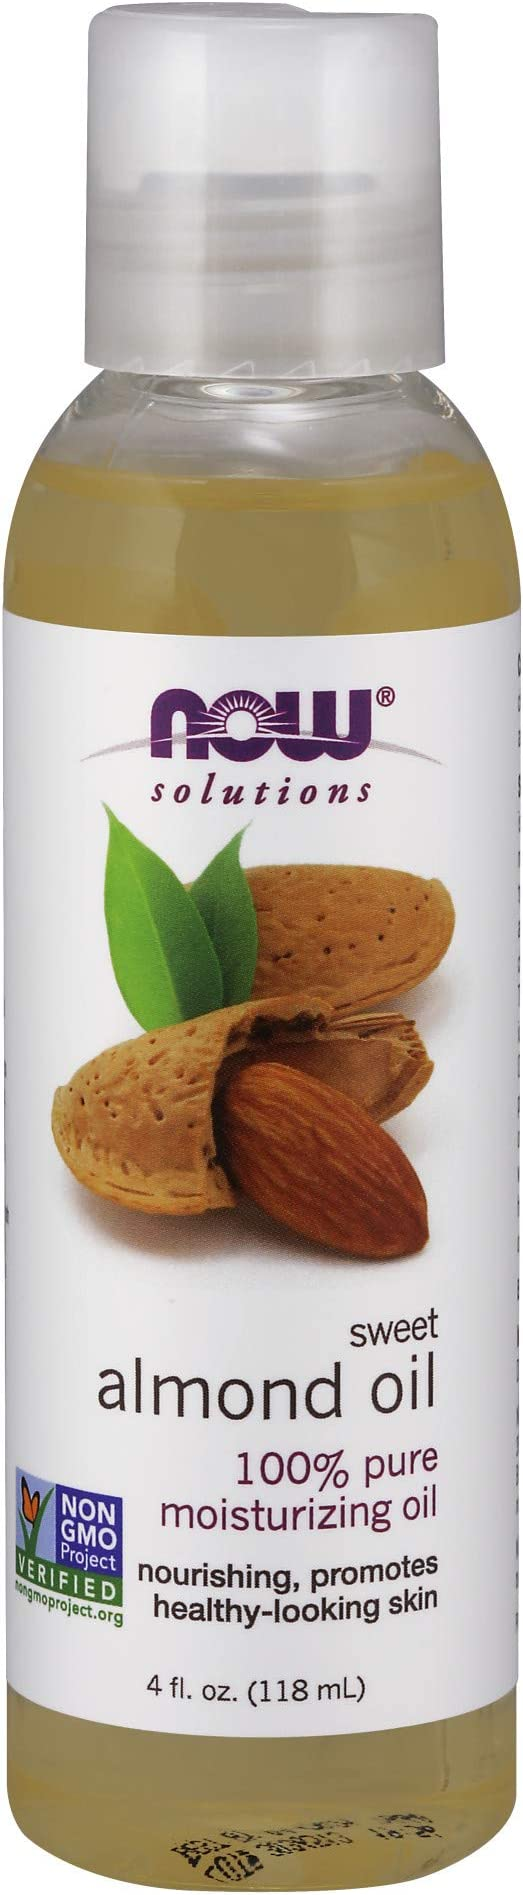 NOW Solutions, Sweet Almond Oil, 100% Pure Moisturizing Oil, Promotes Healthy-Looking Skin, Unscented Oil, 4-Ounce   Amazon